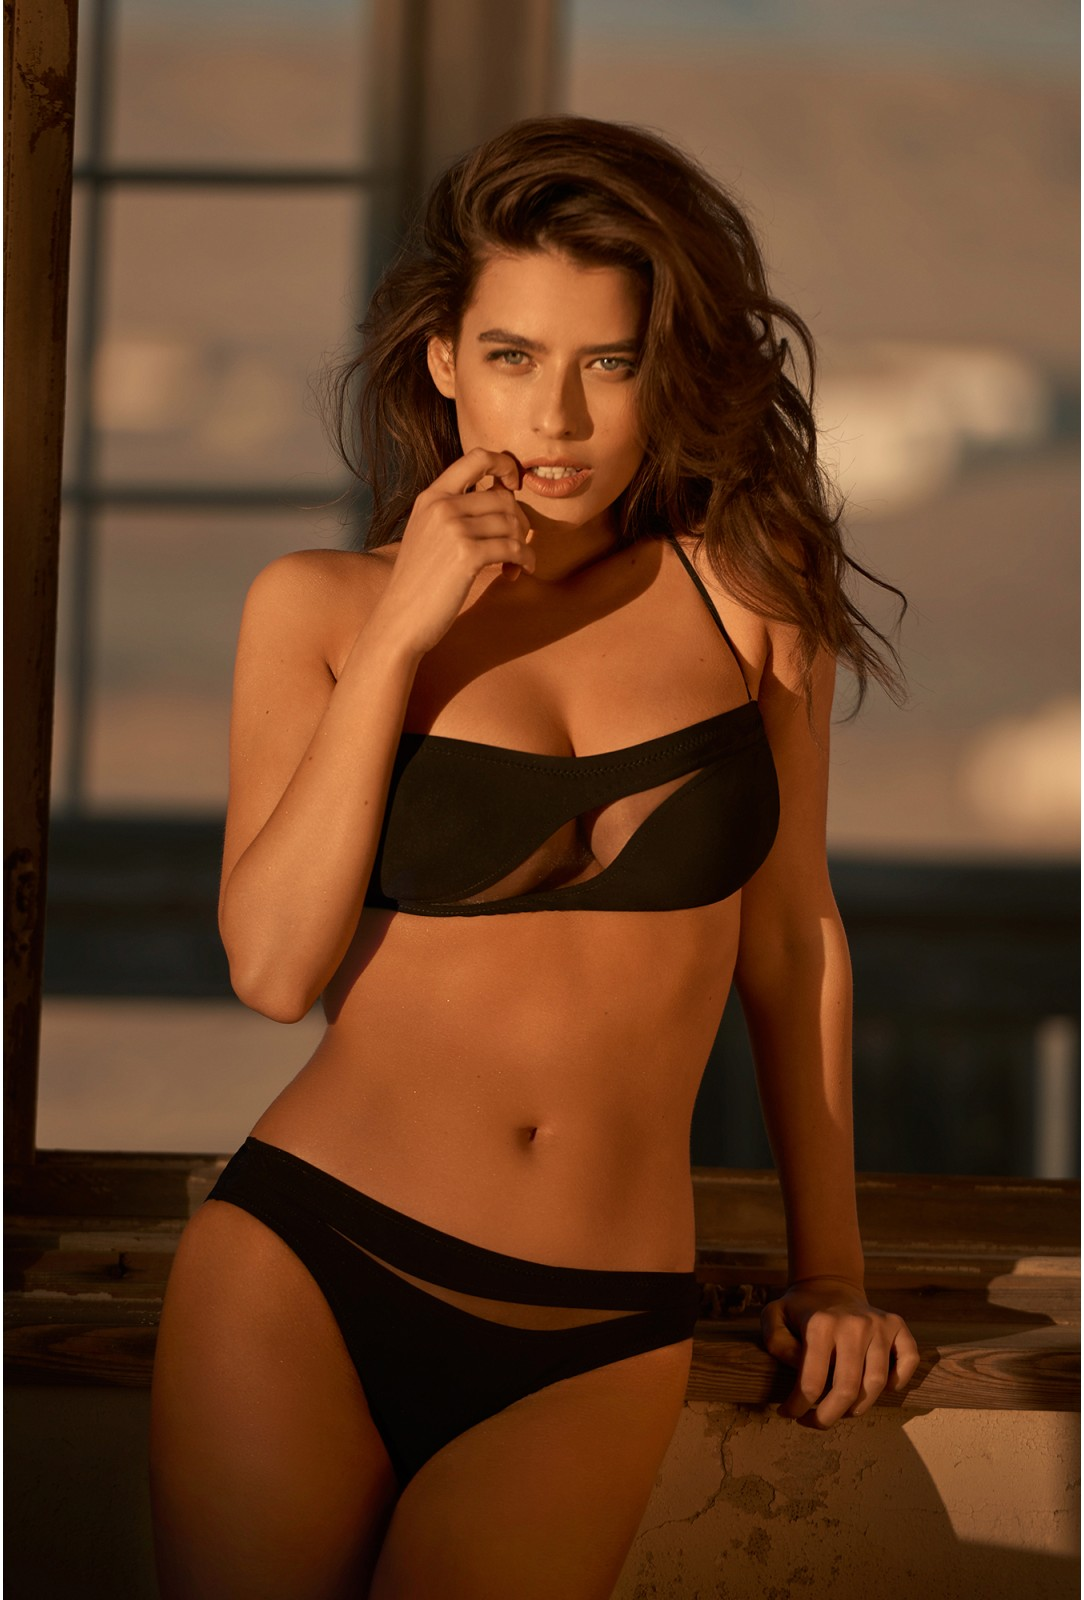 Buy Cheap Low Price Fee Shipping Discount Price Bikini Top wave clearance on the bust Nirvana PAIN DE SUCRE Black - Uni Life Pain De Sucre Sale New Arrival Cheap Sale Many Kinds Of Cheap Visa Payment EPKgt